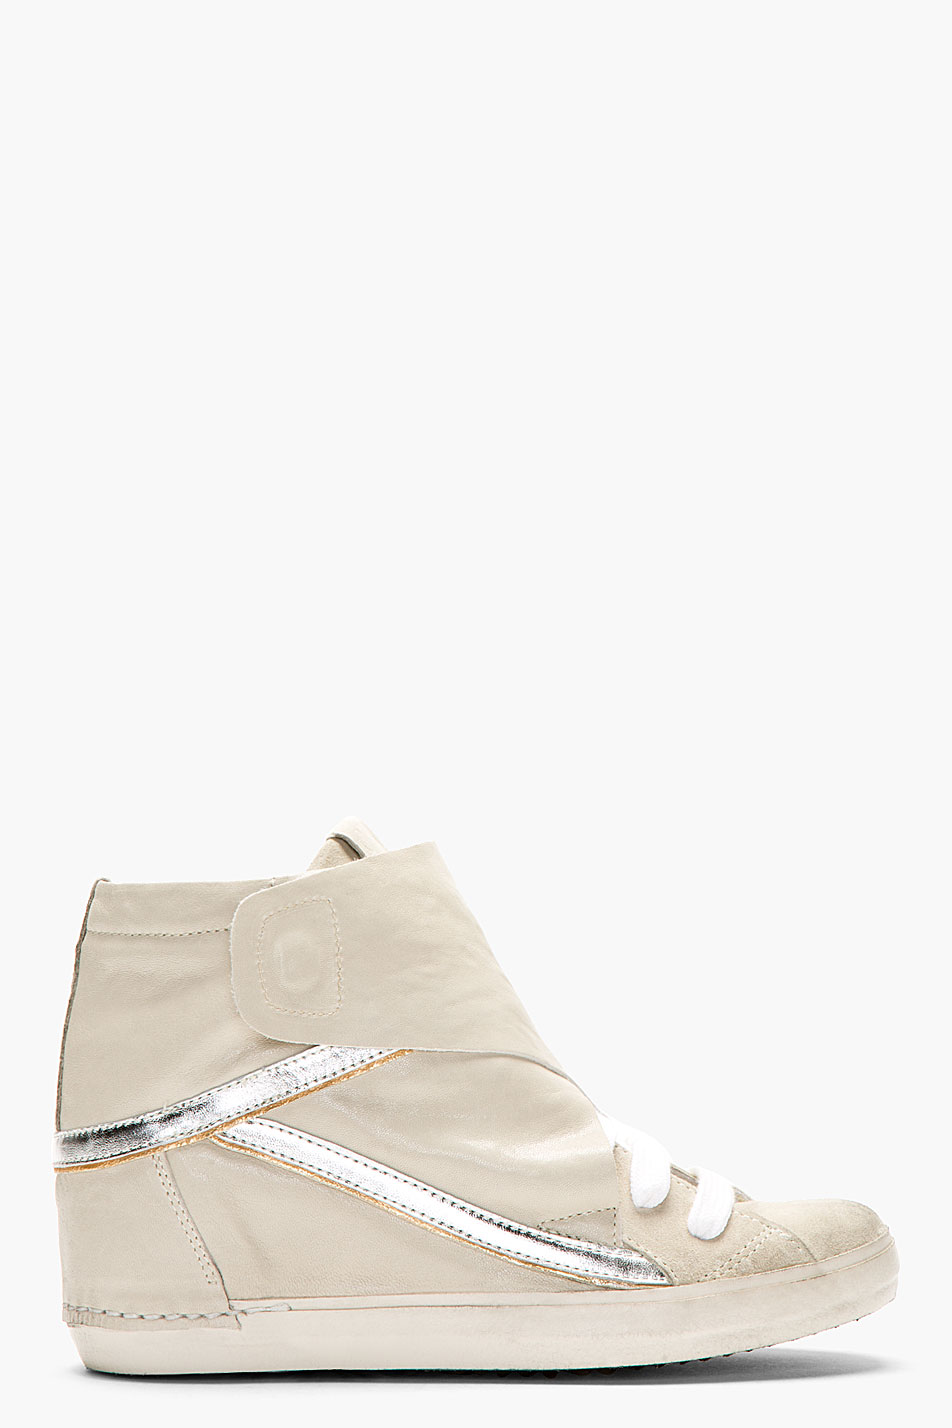 Ca by cinzia araia grey leather new rabbit wedge sneakers